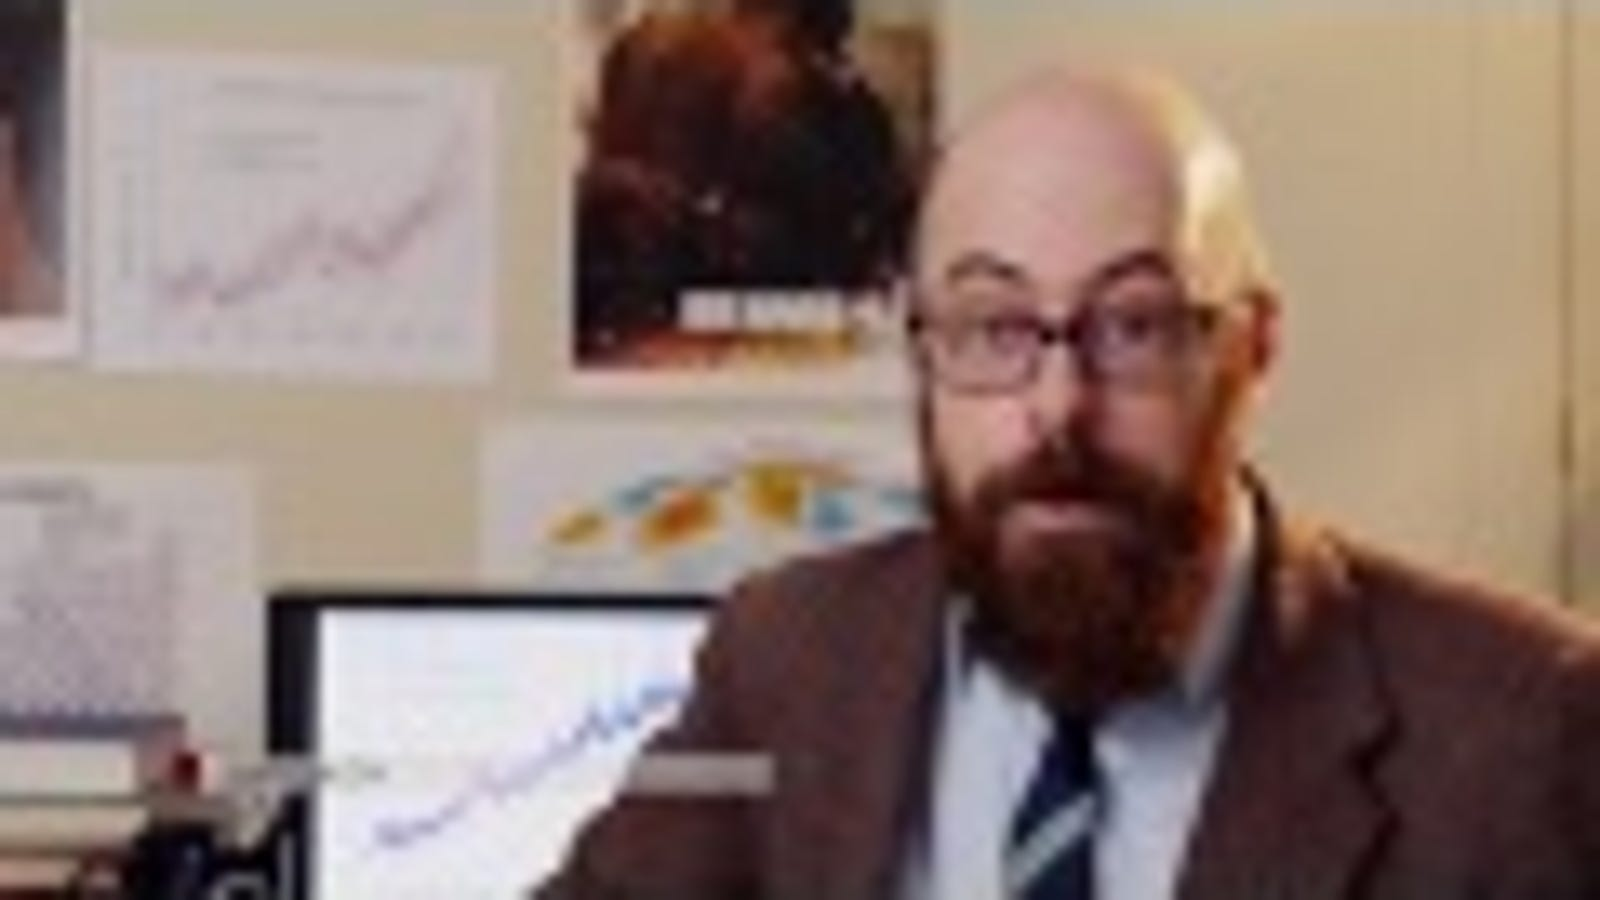 This Week's Top Comedy Video: Bald Earth